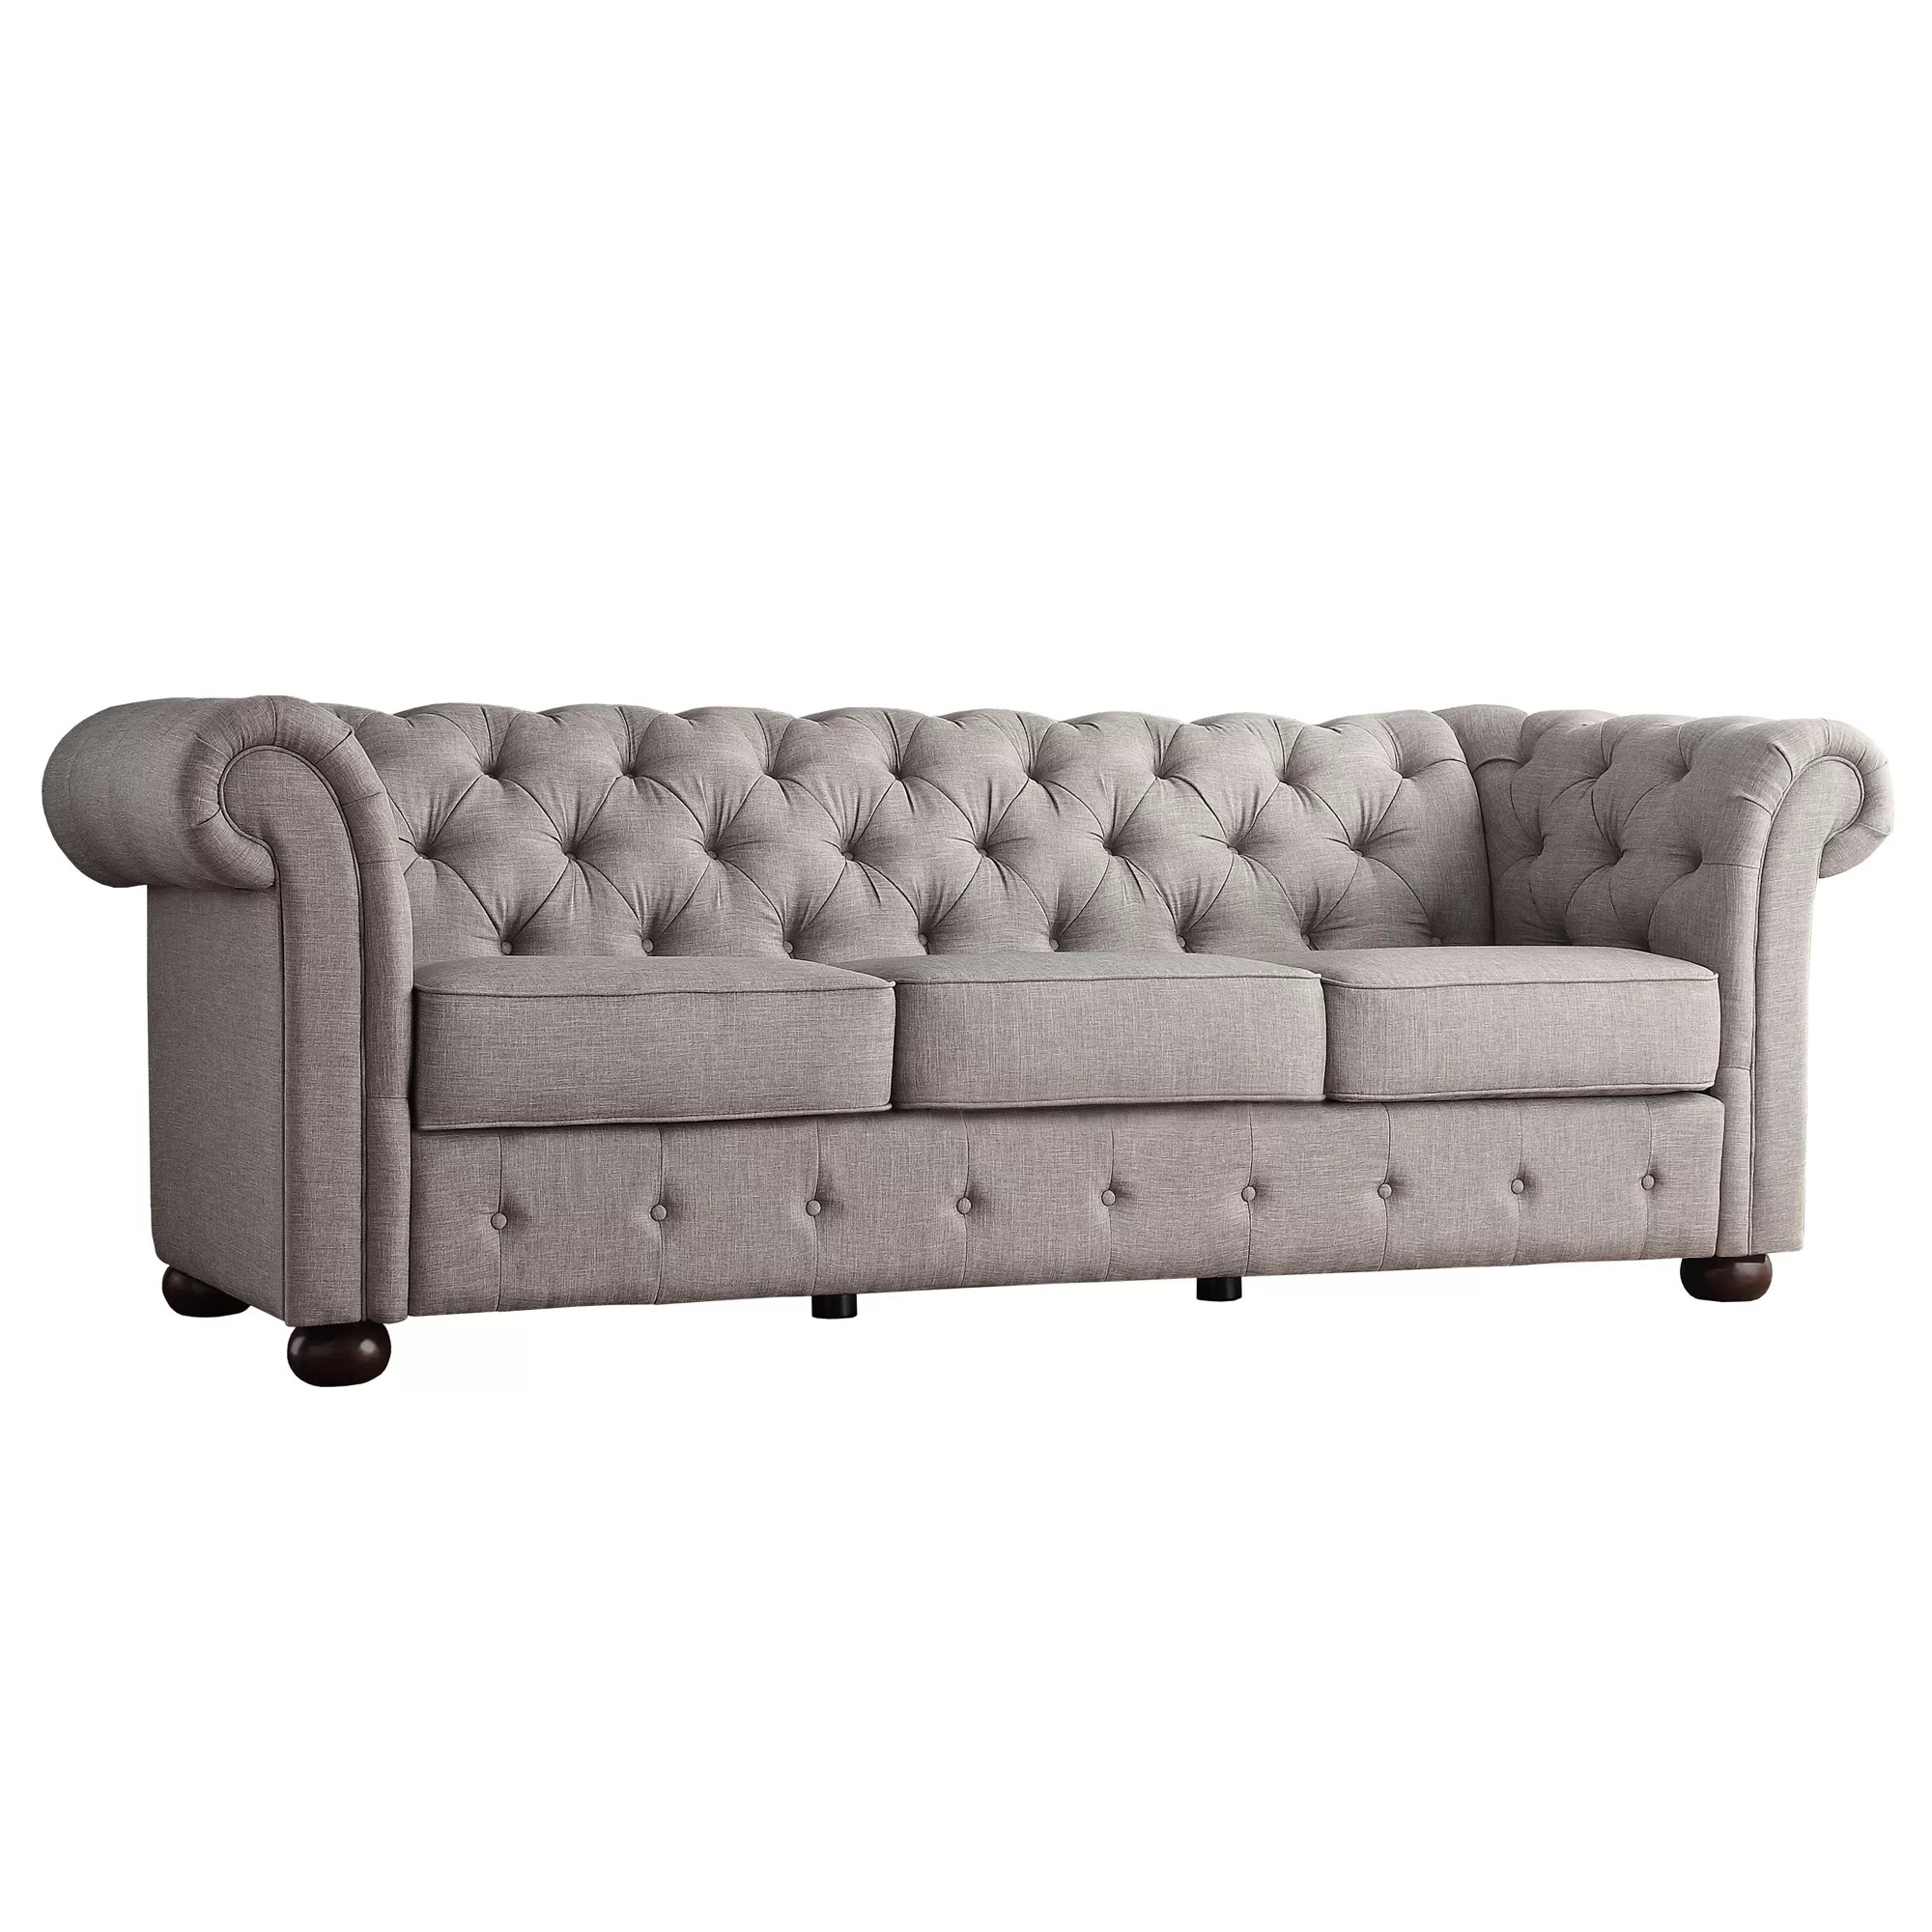 Chesterfield Lounge Vegard Chesterfield Sofa